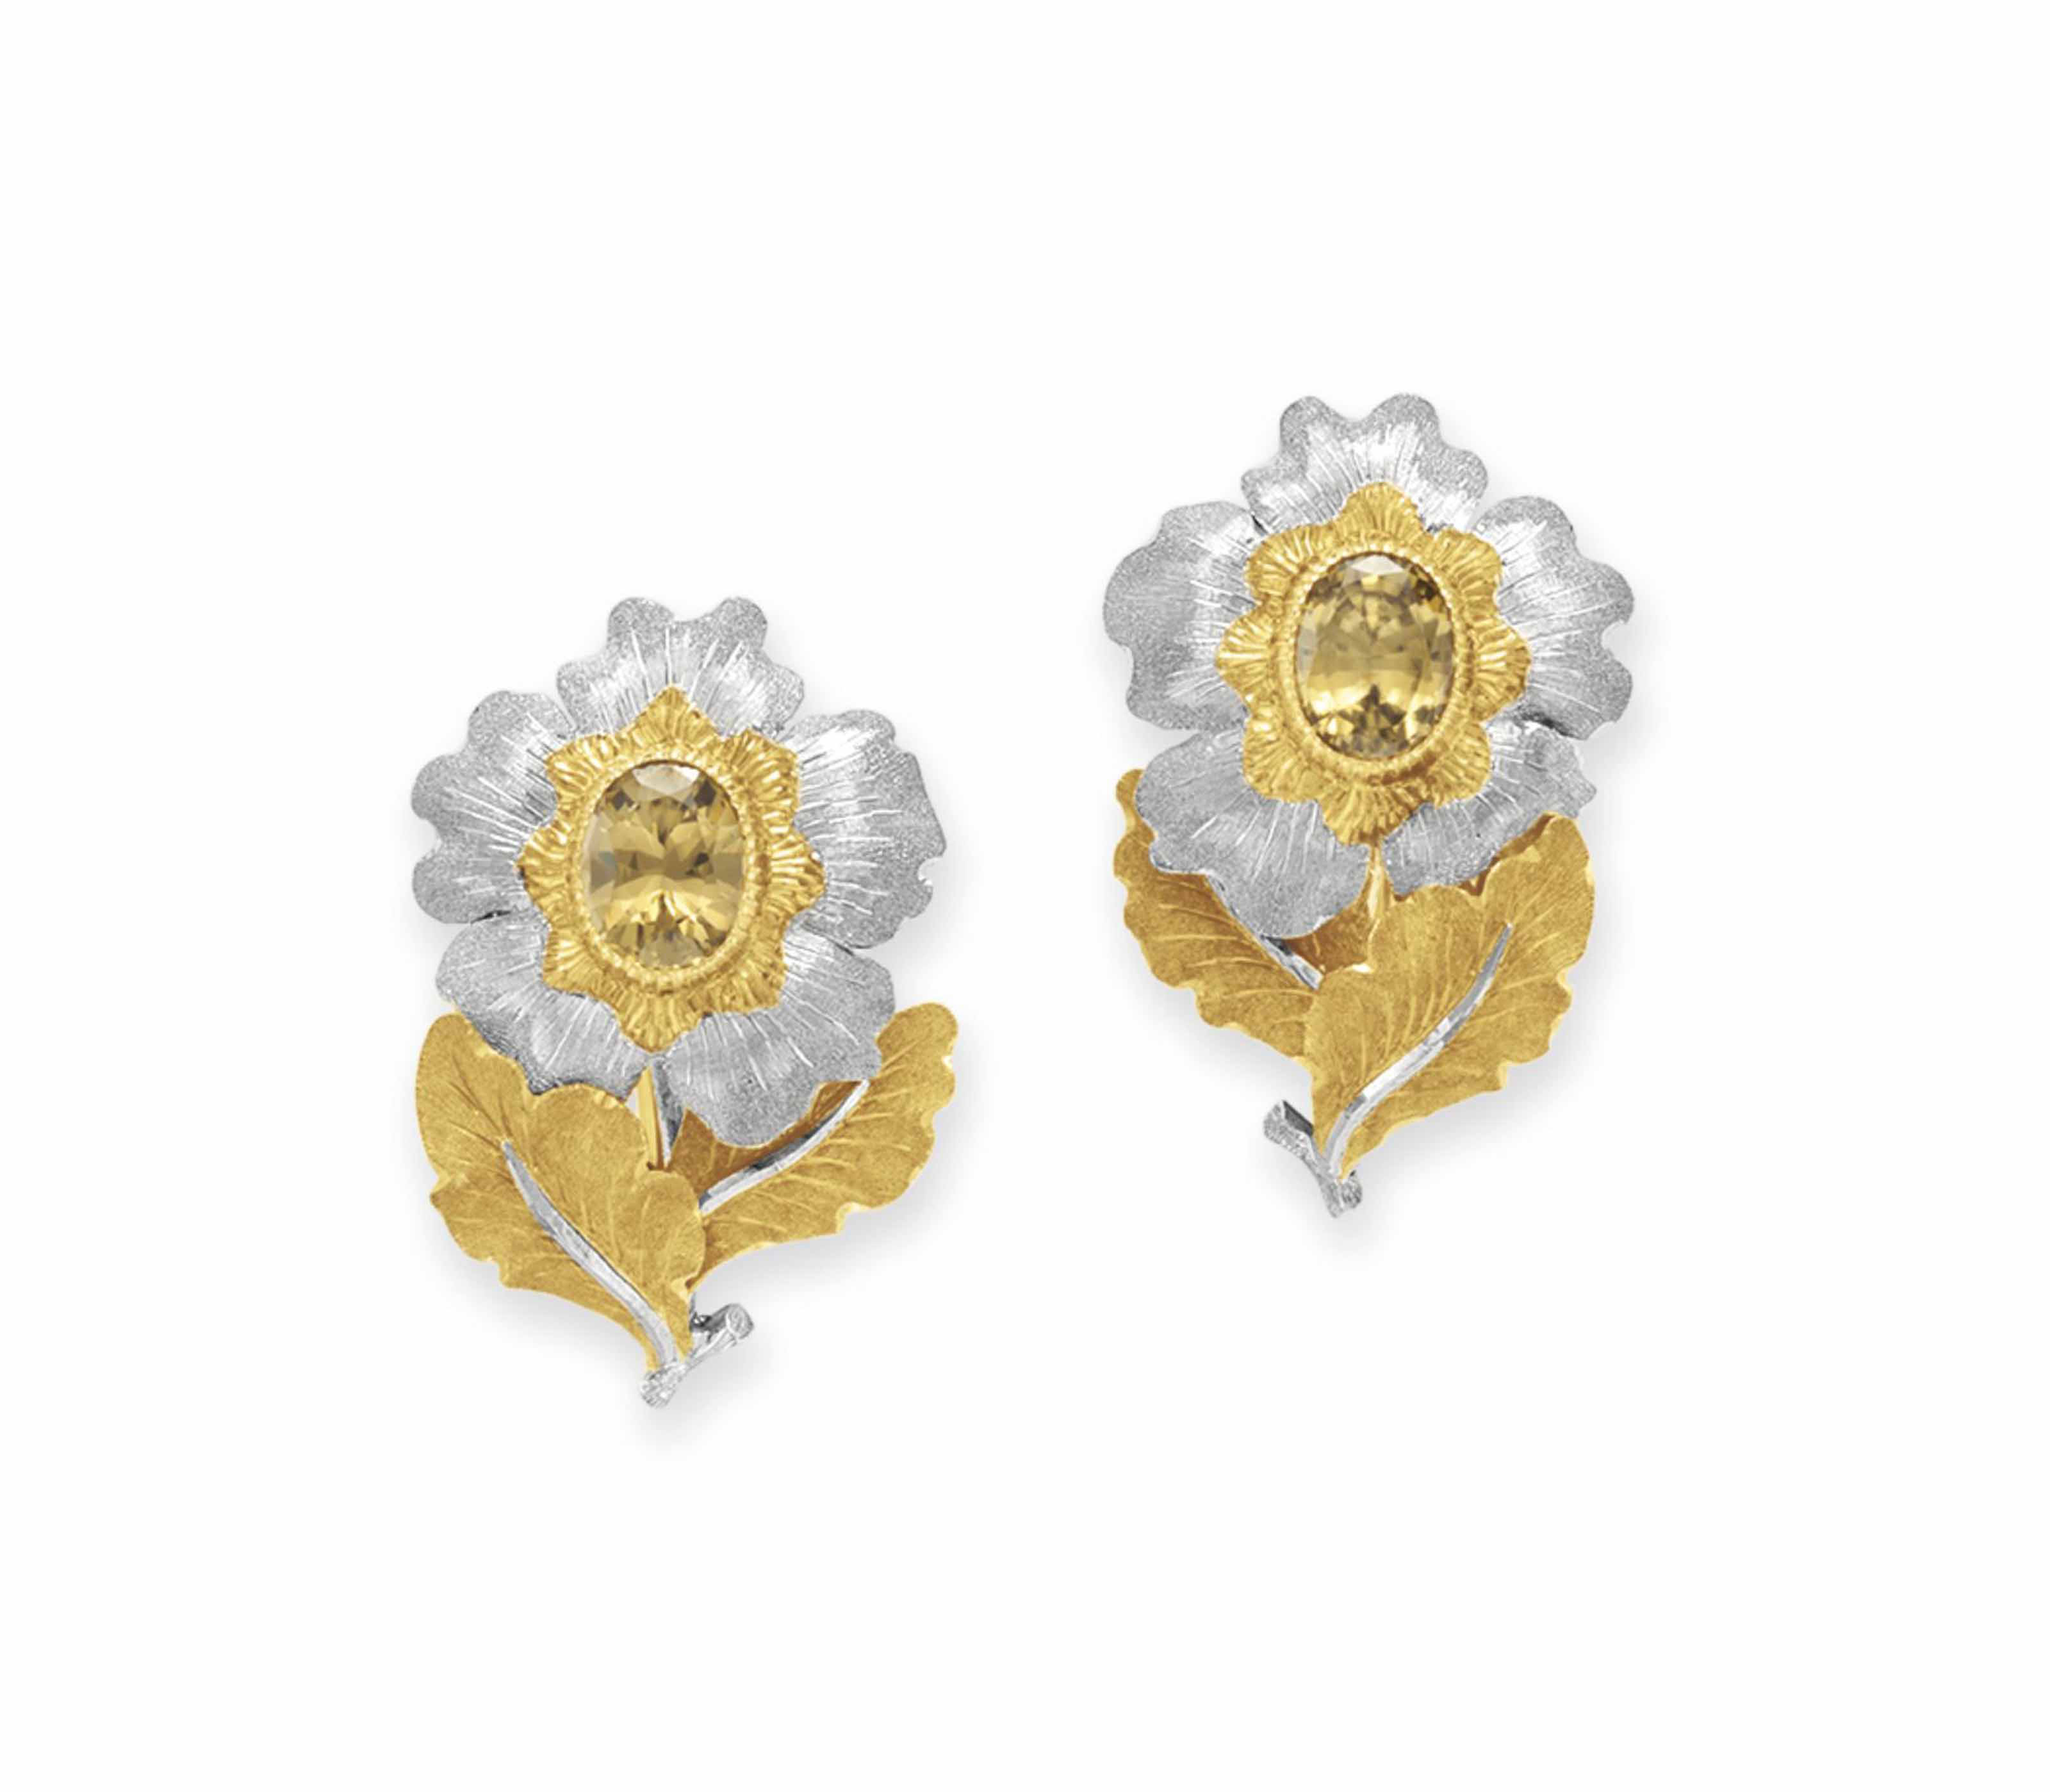 A PAIR OF TOPAZ AND GOLD FLOWE